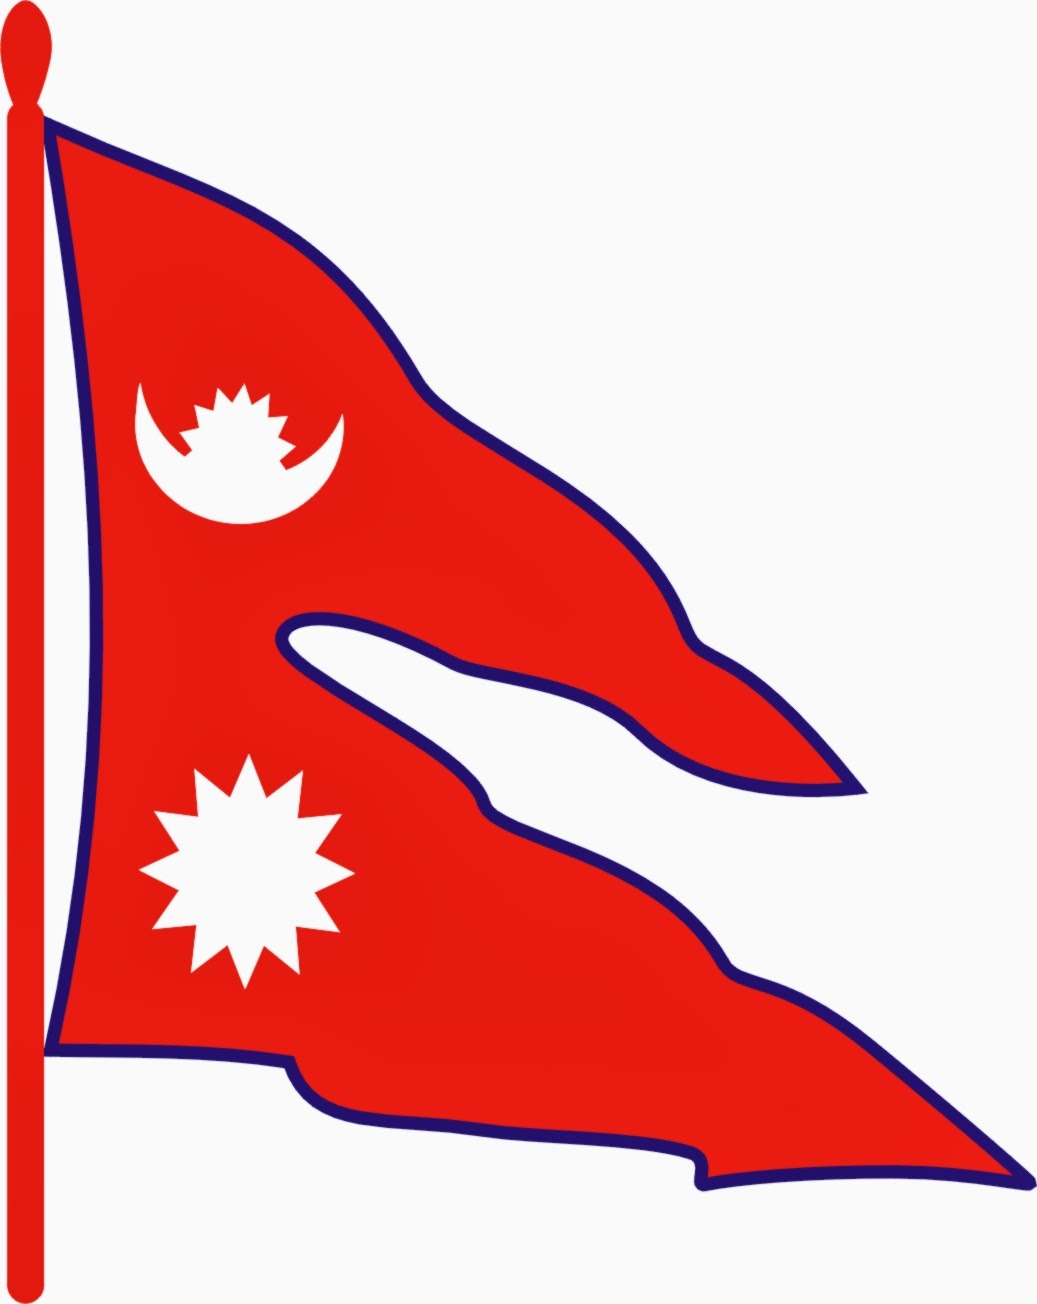 nepal in the world map nepal flag » Path Decorations Pictures | Full ...